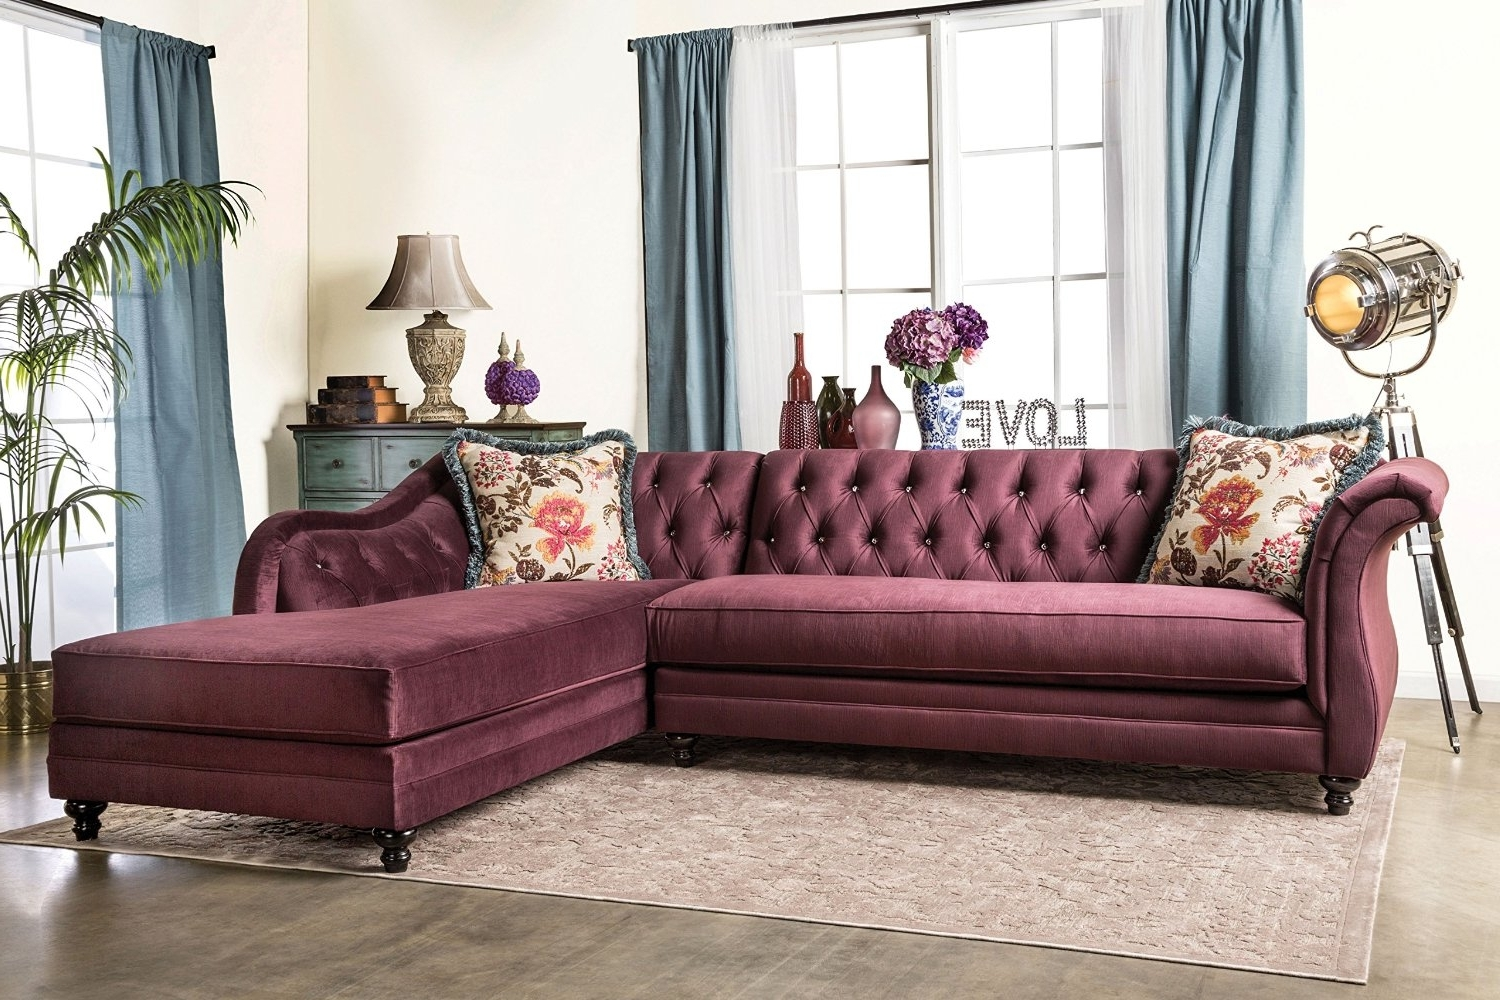 Well Known Sofa : Target Tufted Loveseat Tufted Leather Furniture White Regarding Tufted Sectional Sofas (View 12 of 15)